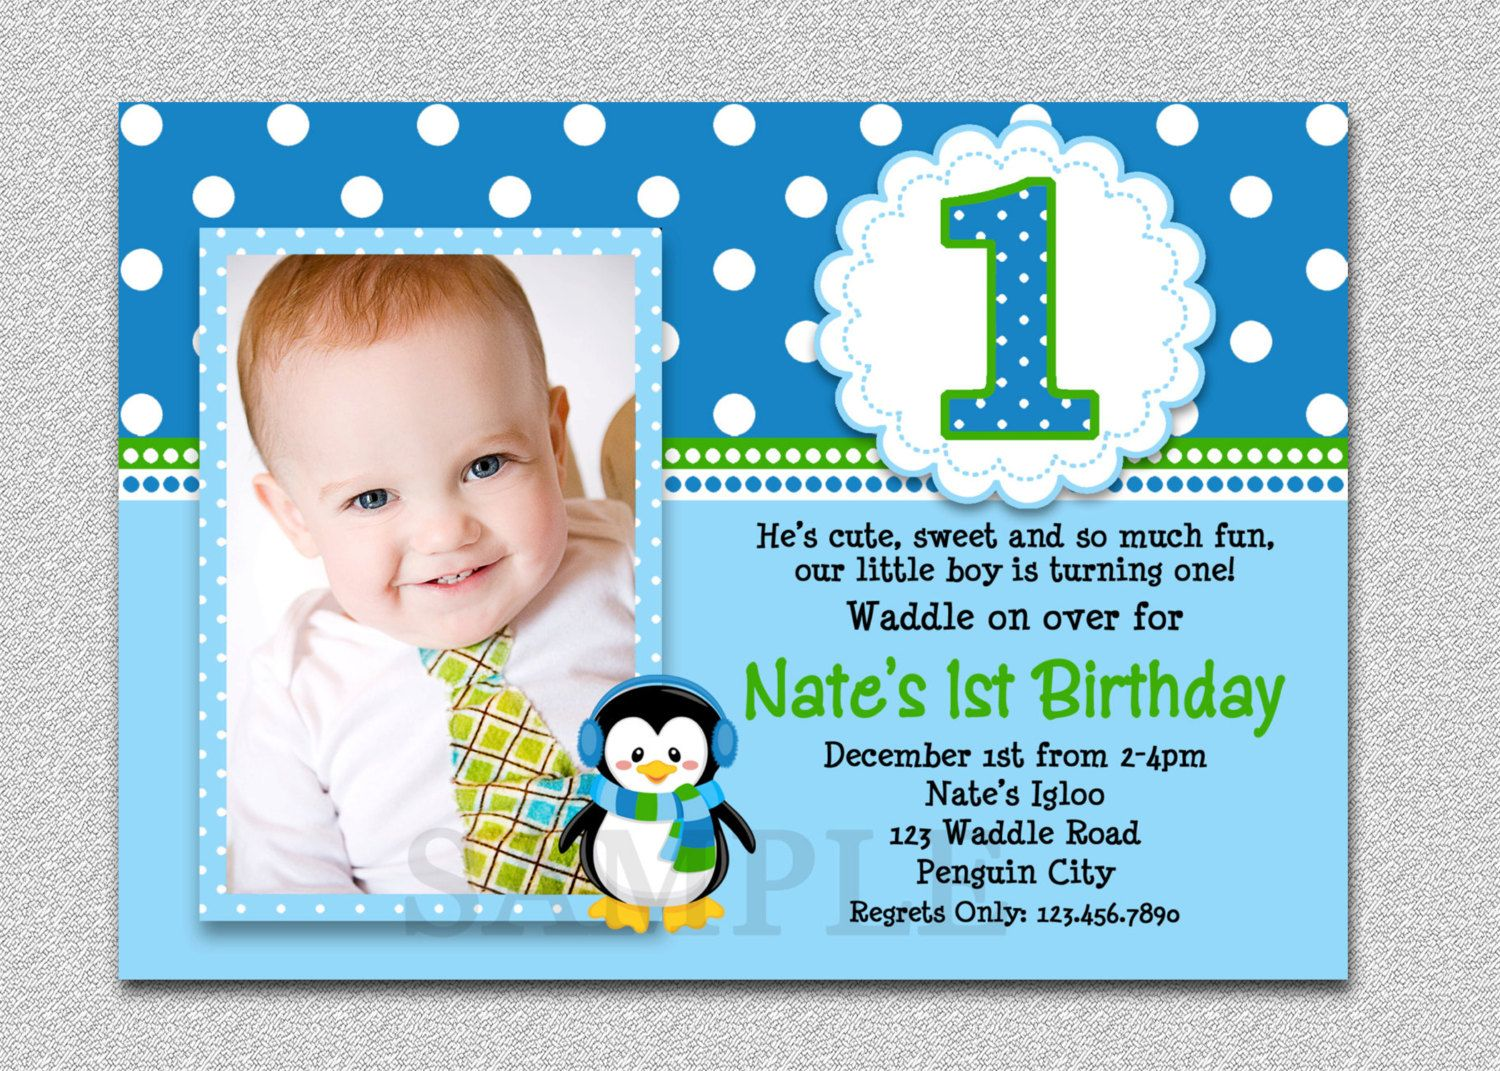 1st birthday invitations 21st bridal world wedding ideas and birthday invitation card for boy concept bossy baby boy invitation card with smiley baby photos design alongside blue polka dot frames and round tenplate filmwisefo Image collections